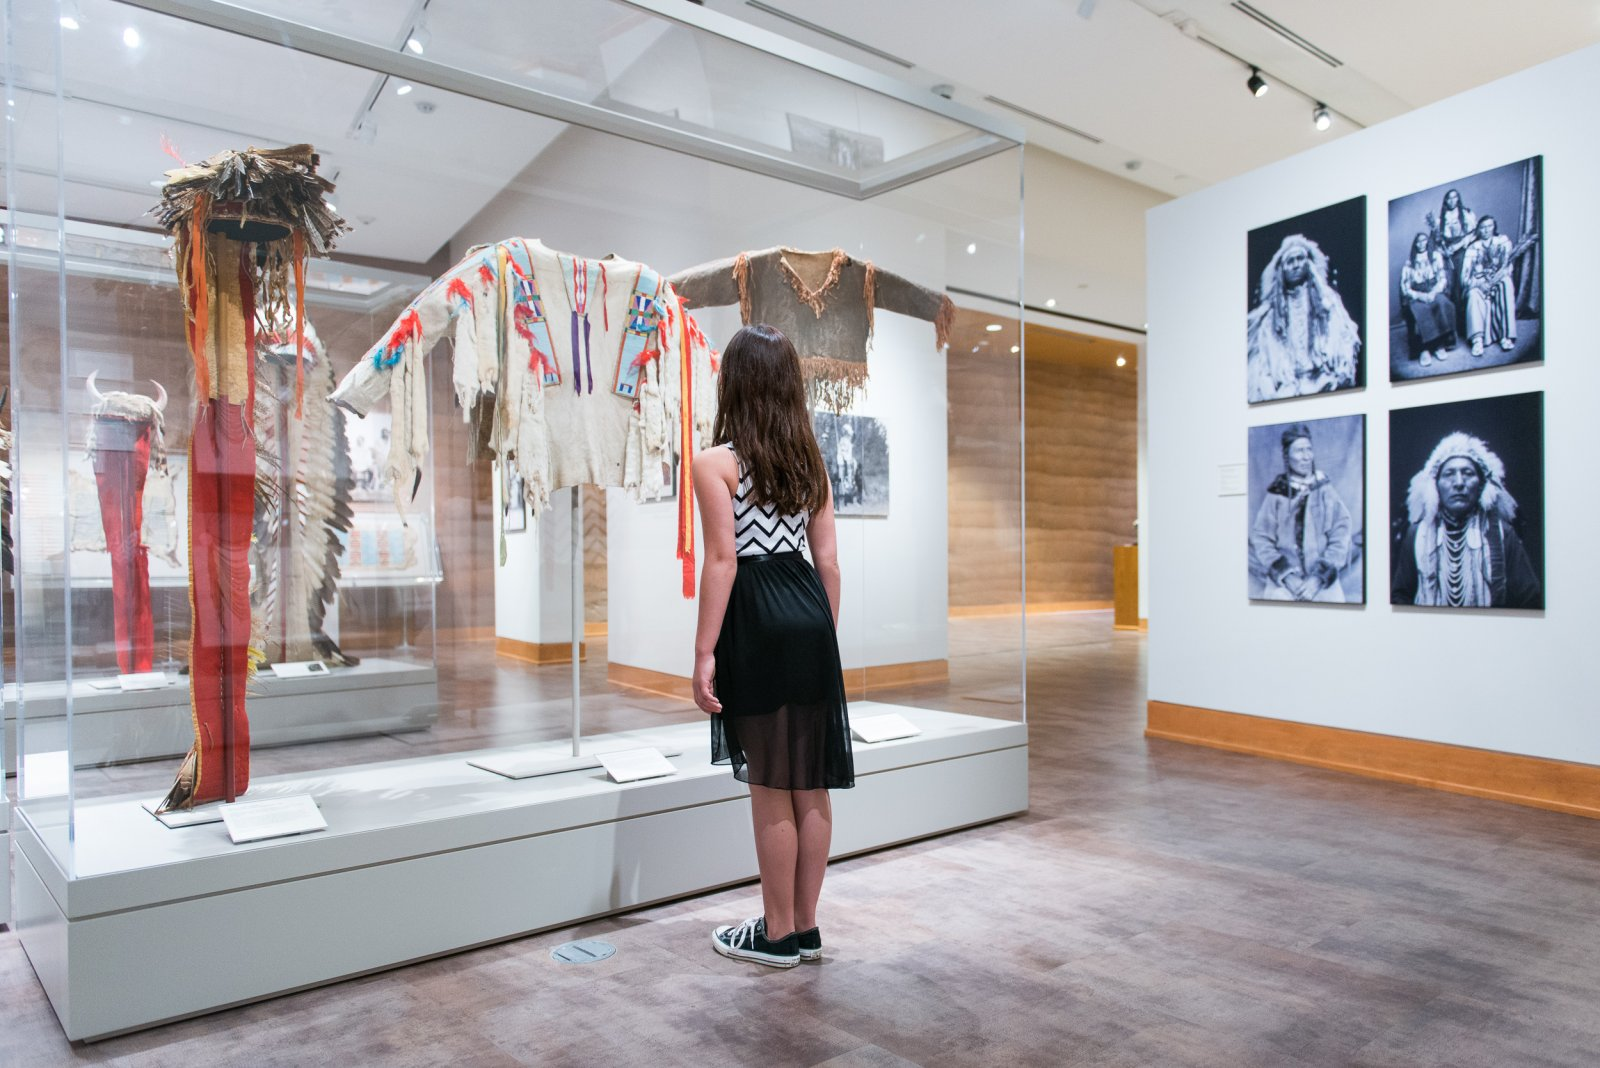 A girl in a black and white dress looks at a display of Native American clothing at the Brinton Museum in Sheridan, Wyoming.